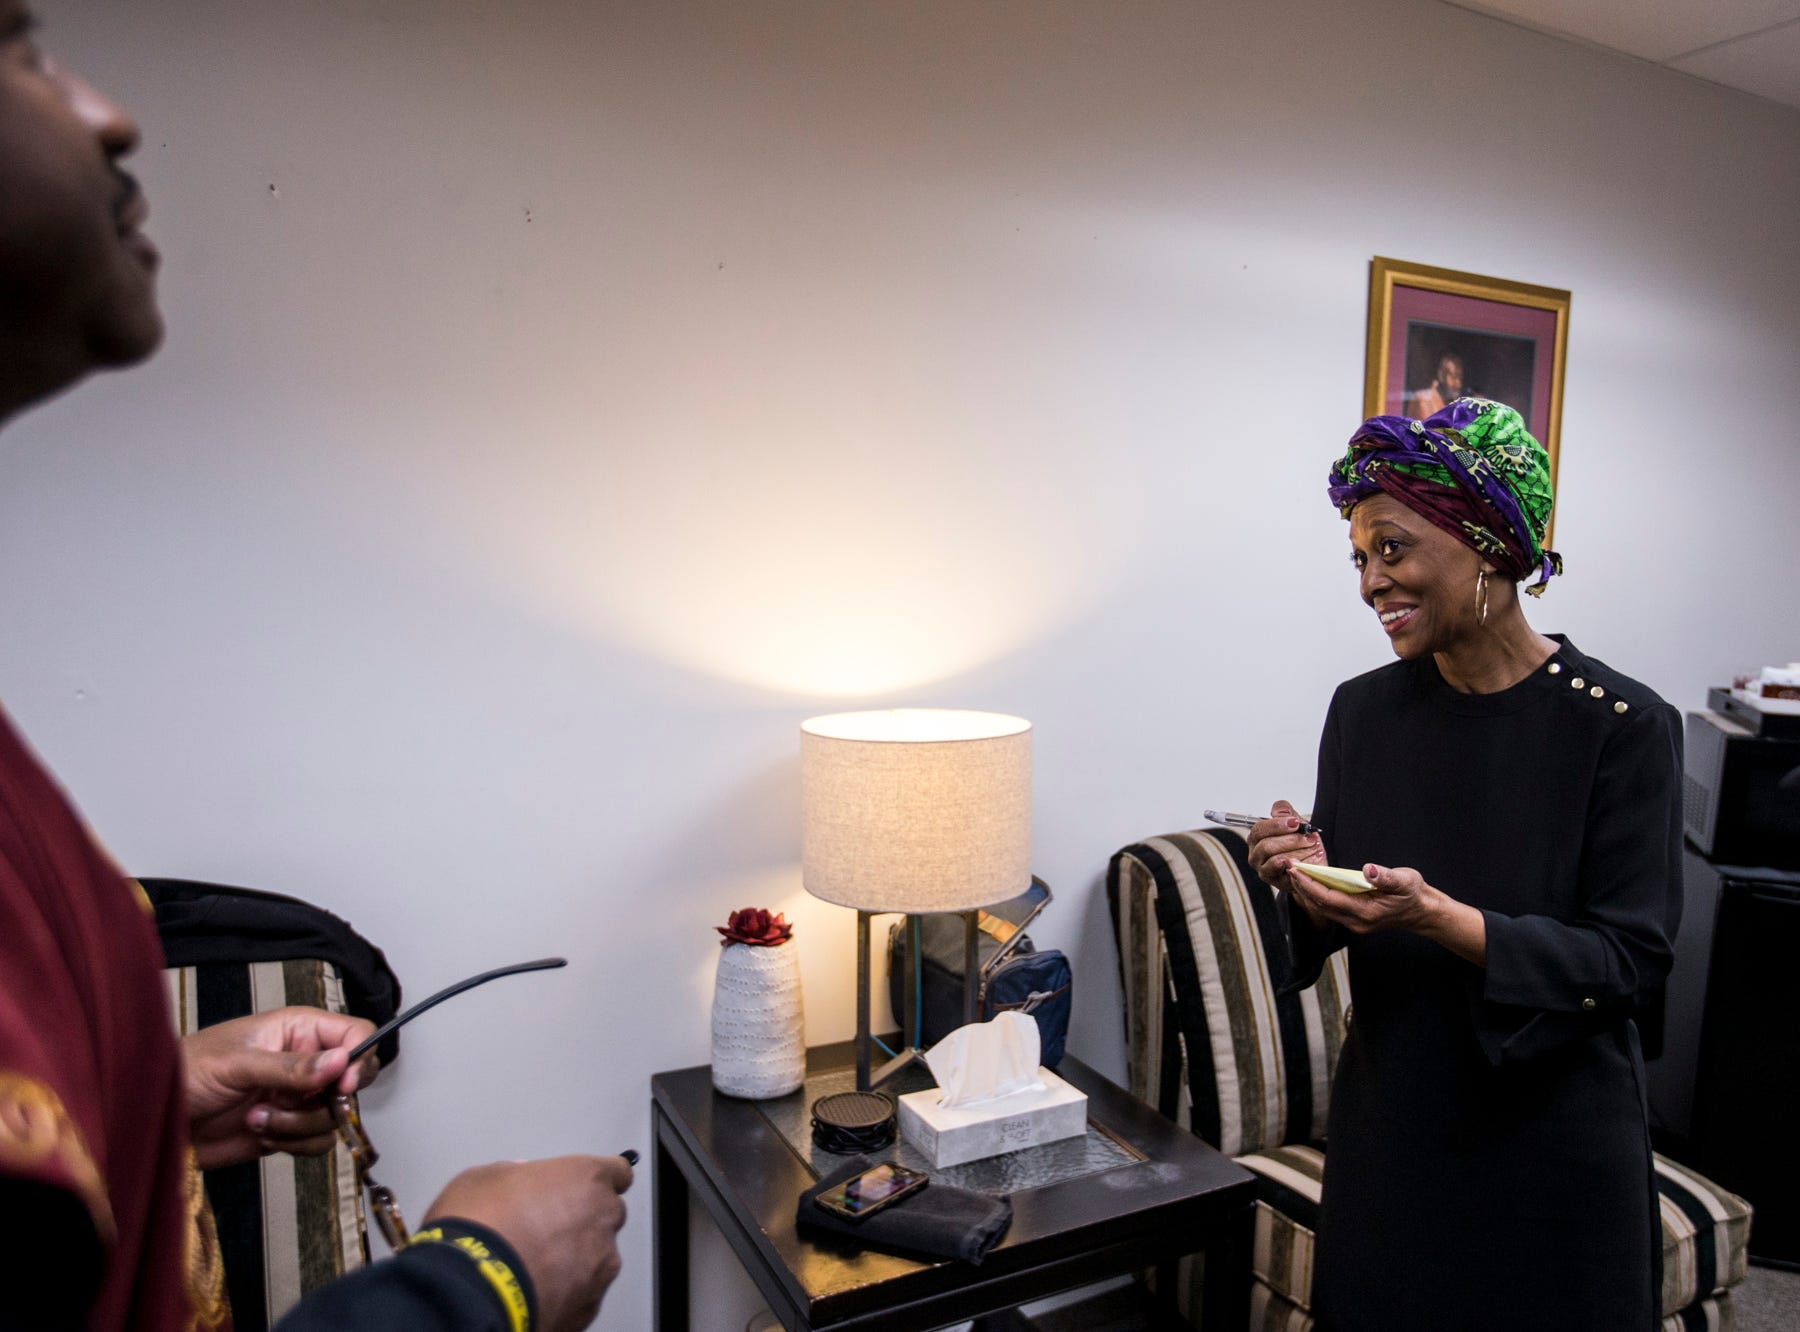 Sharon Green talks to Pastor Terry Mackey in the vestry before the 7:30 a.m. service on Feb. 24, 2019, at Pilgrim Rest Baptist Church in Phoenix. Mackey was appointed to replace the late Bishop Alexis Thomas.